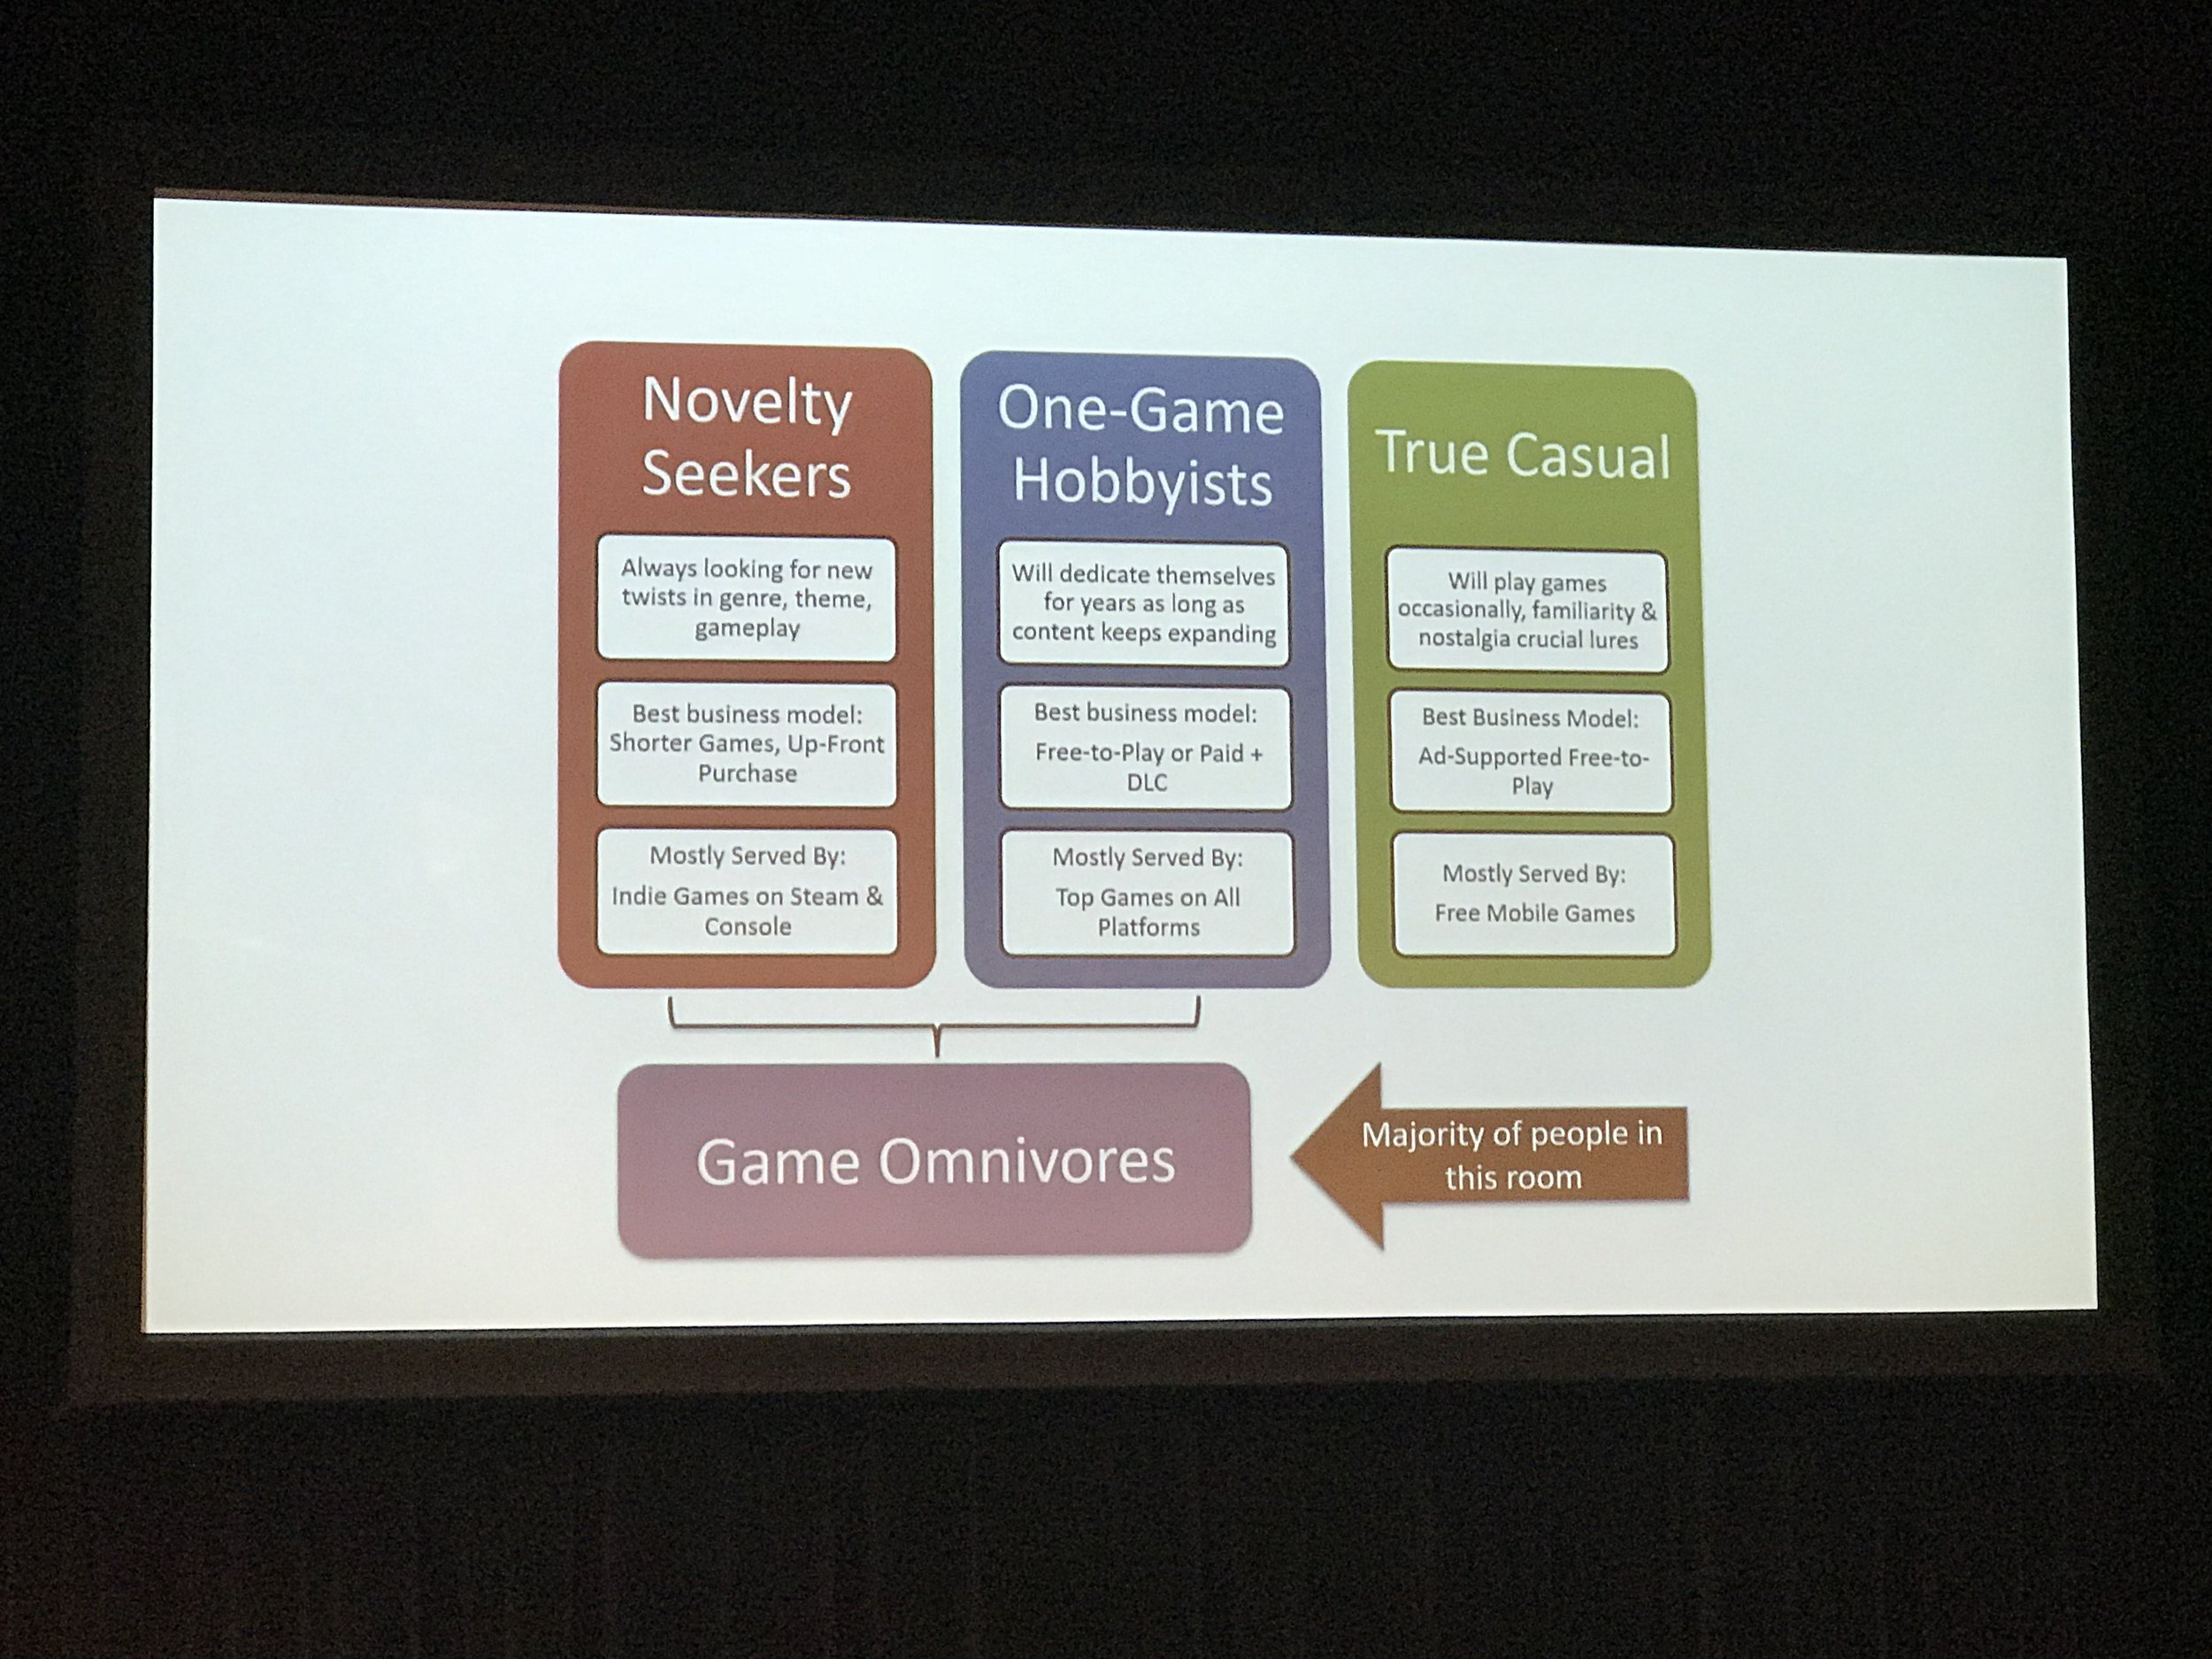 Emily Greer's proposed classifications of gamer types